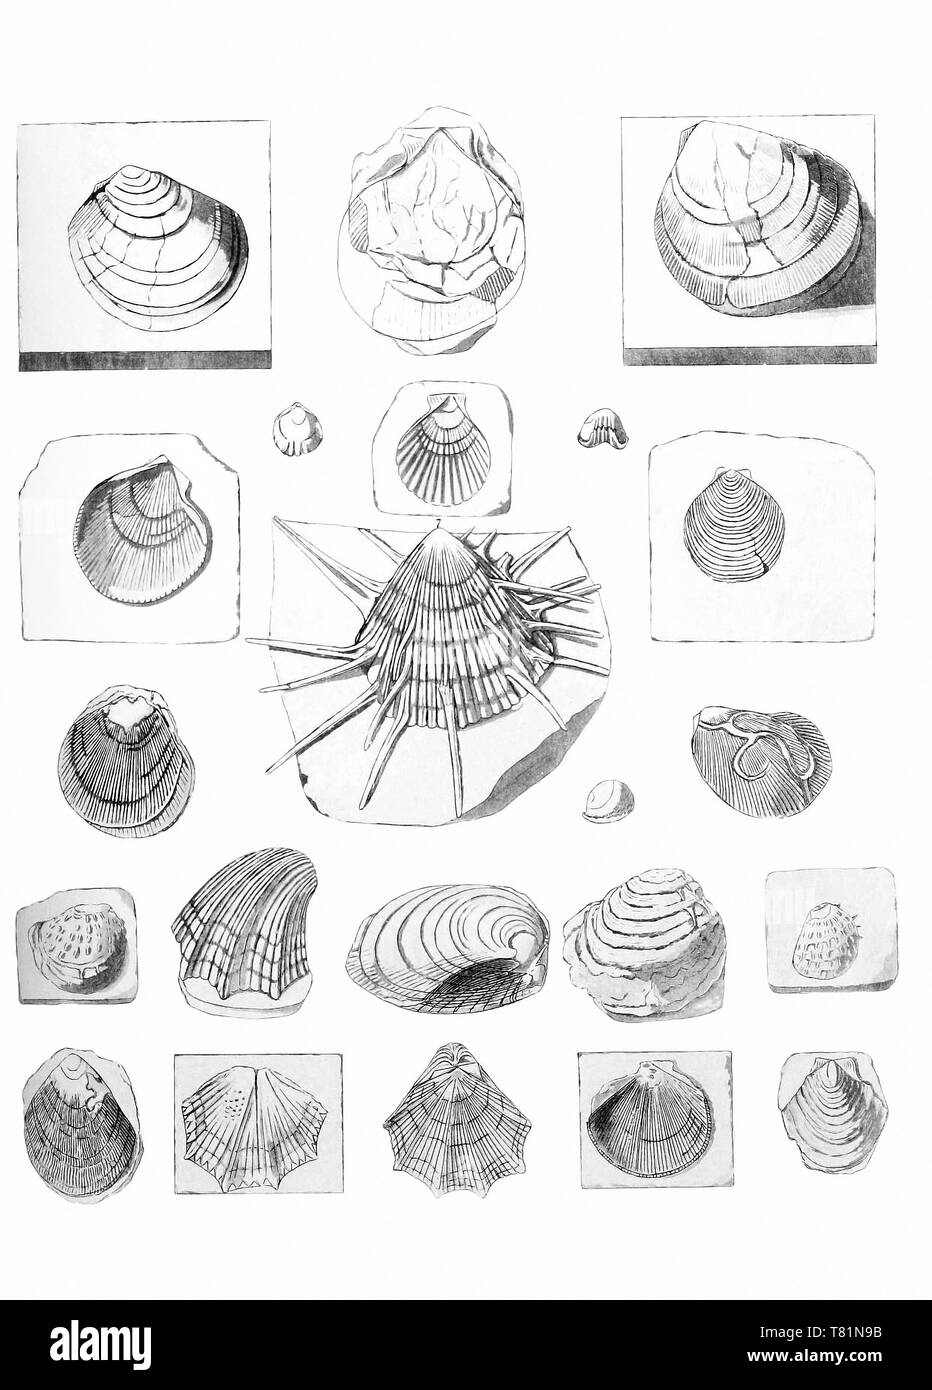 Fossil Clams and Scallops - Stock Image